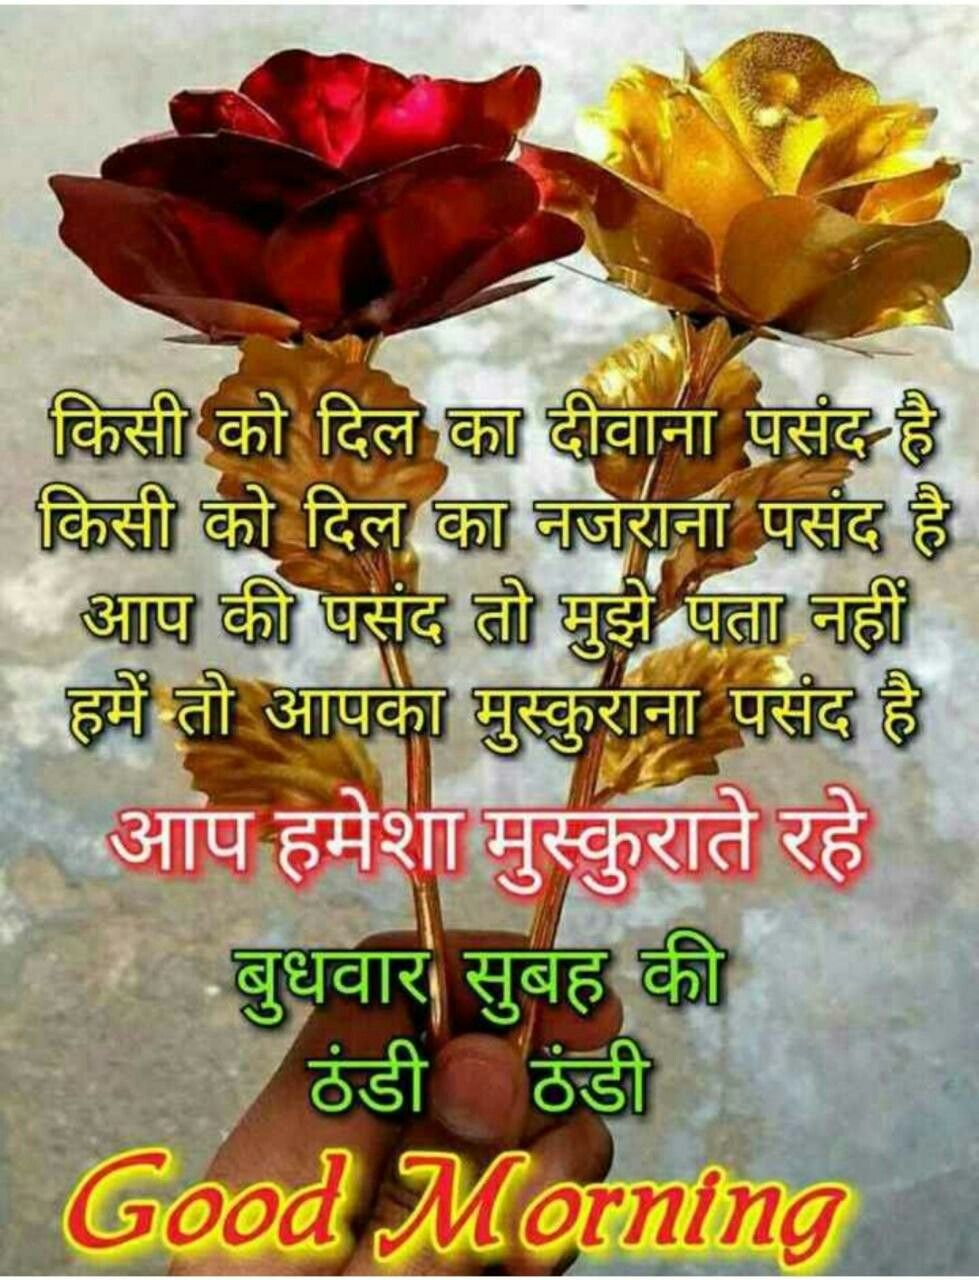 Pin by RADHIKA on Flowers   Morning greetings quotes, Good ...